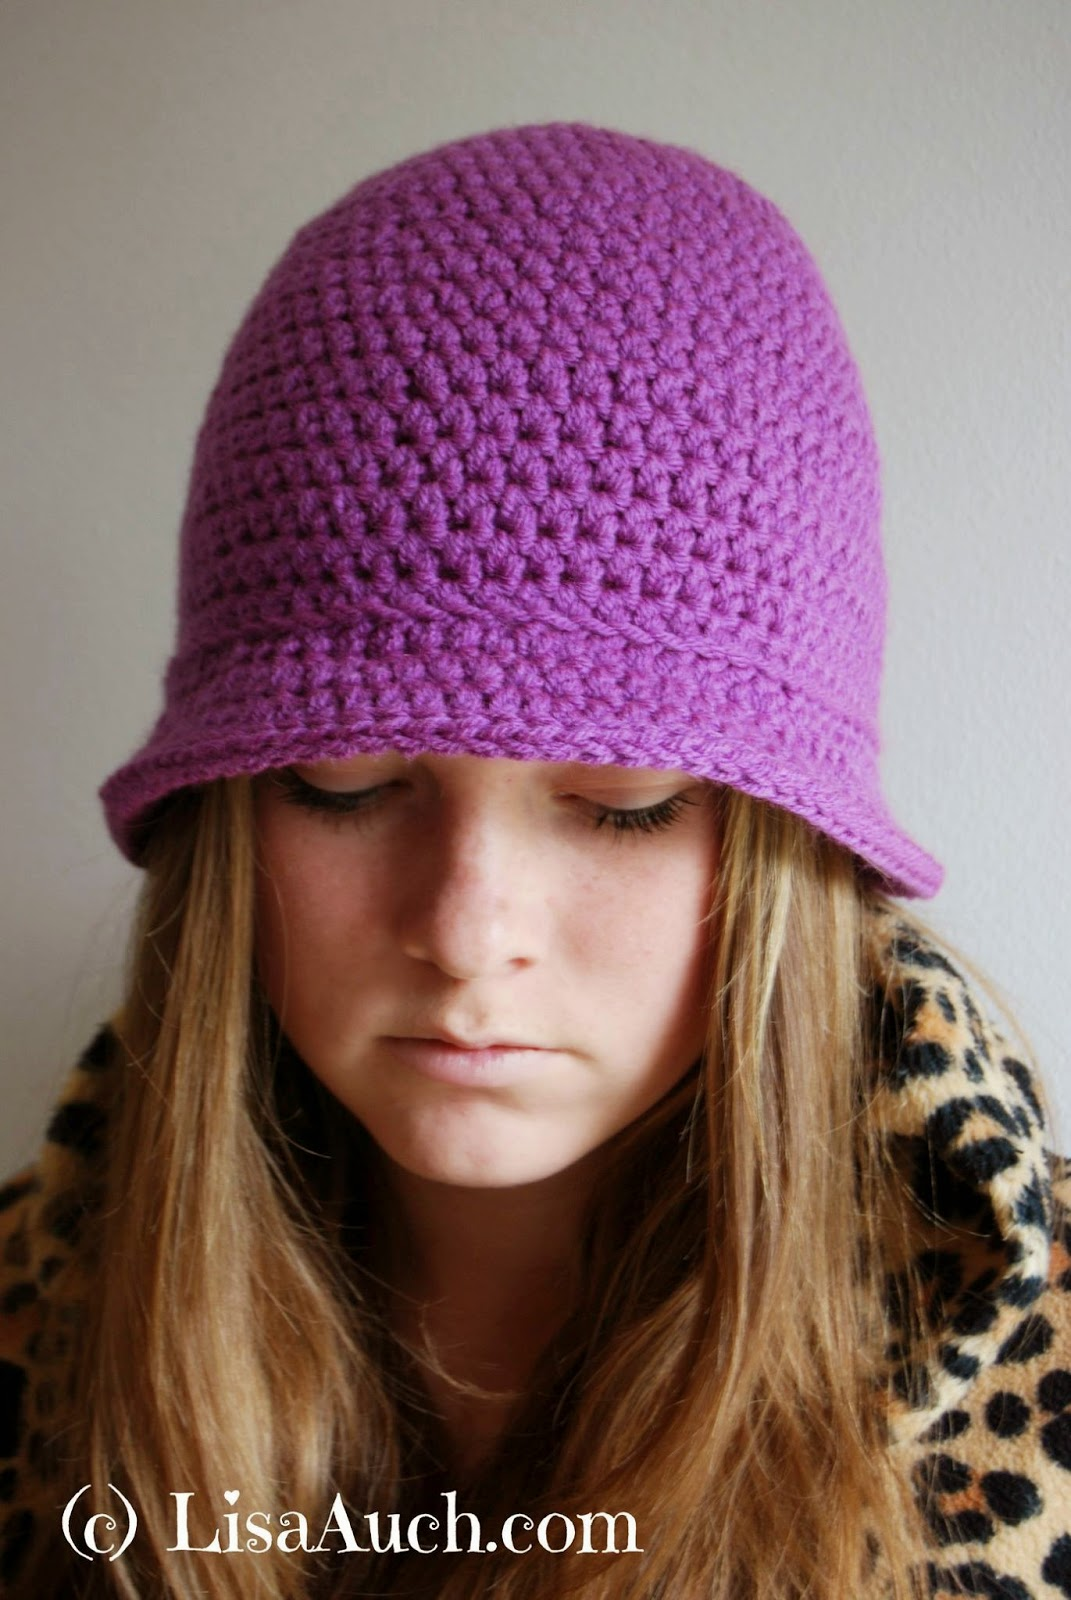 Free Crochet Beanie Patterns For Women aece8d81a